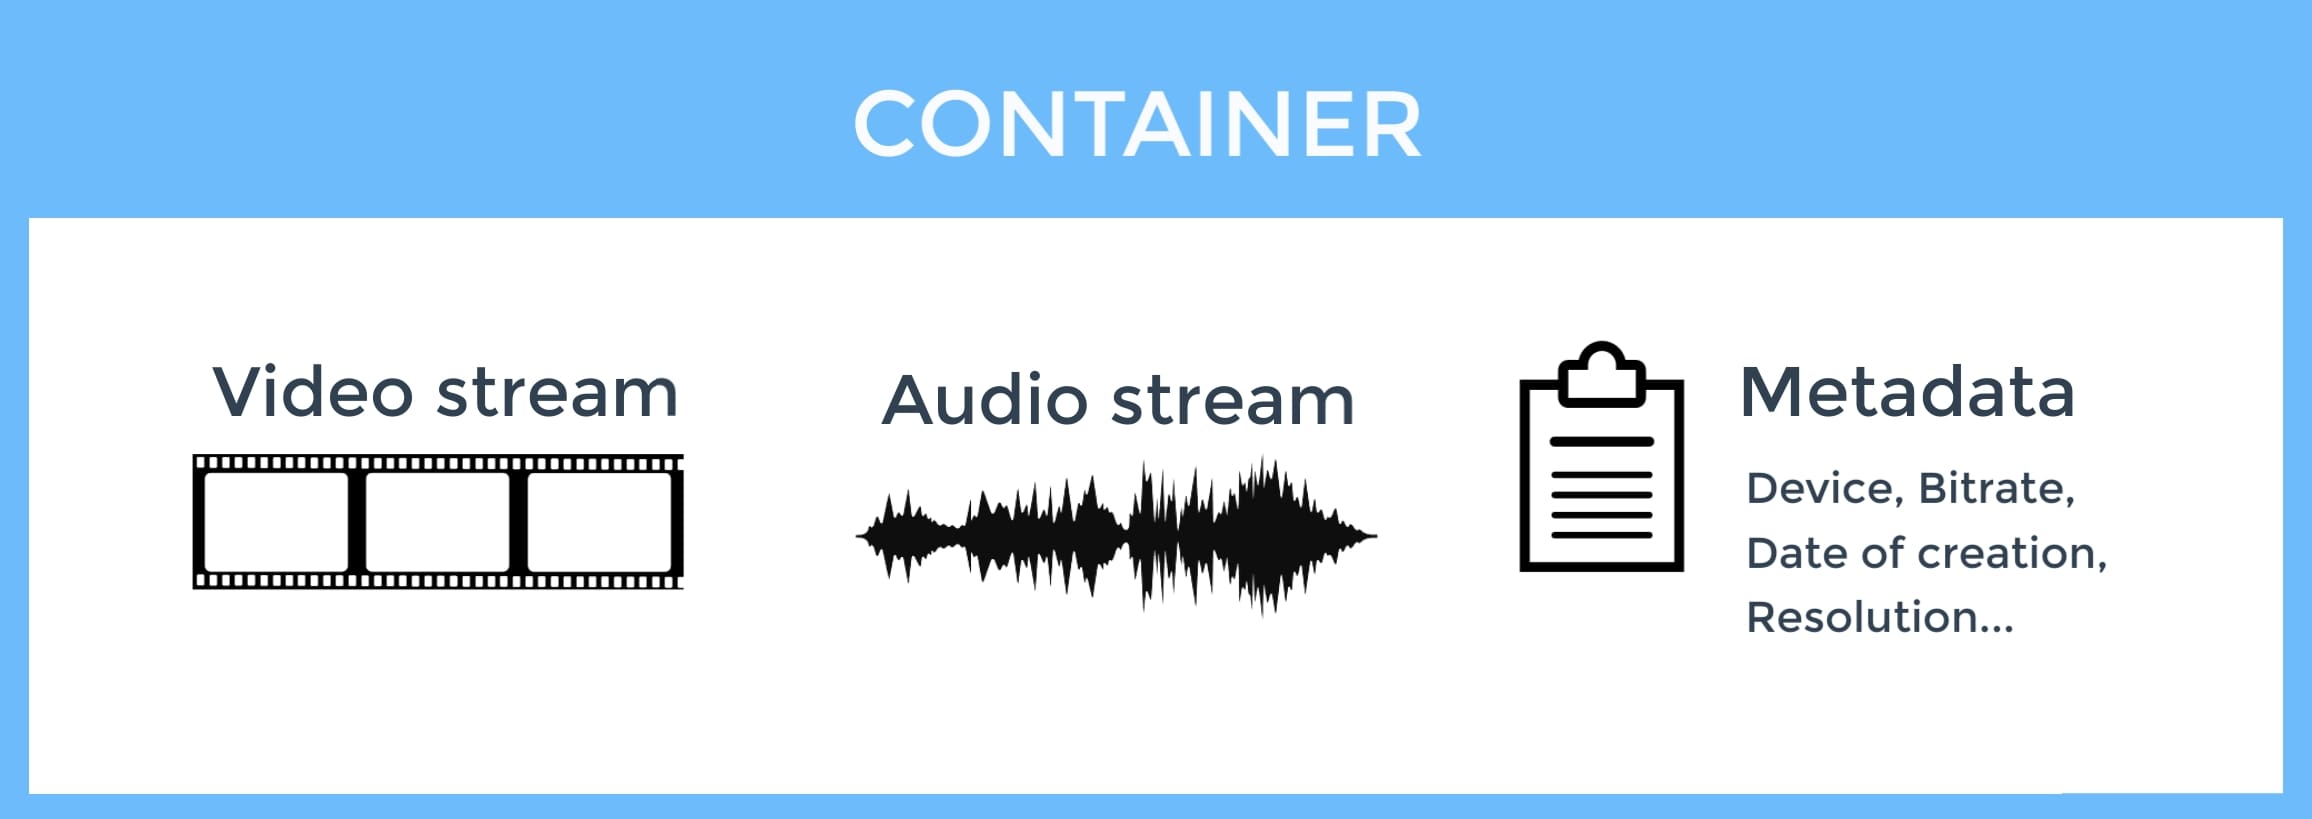 video container explained